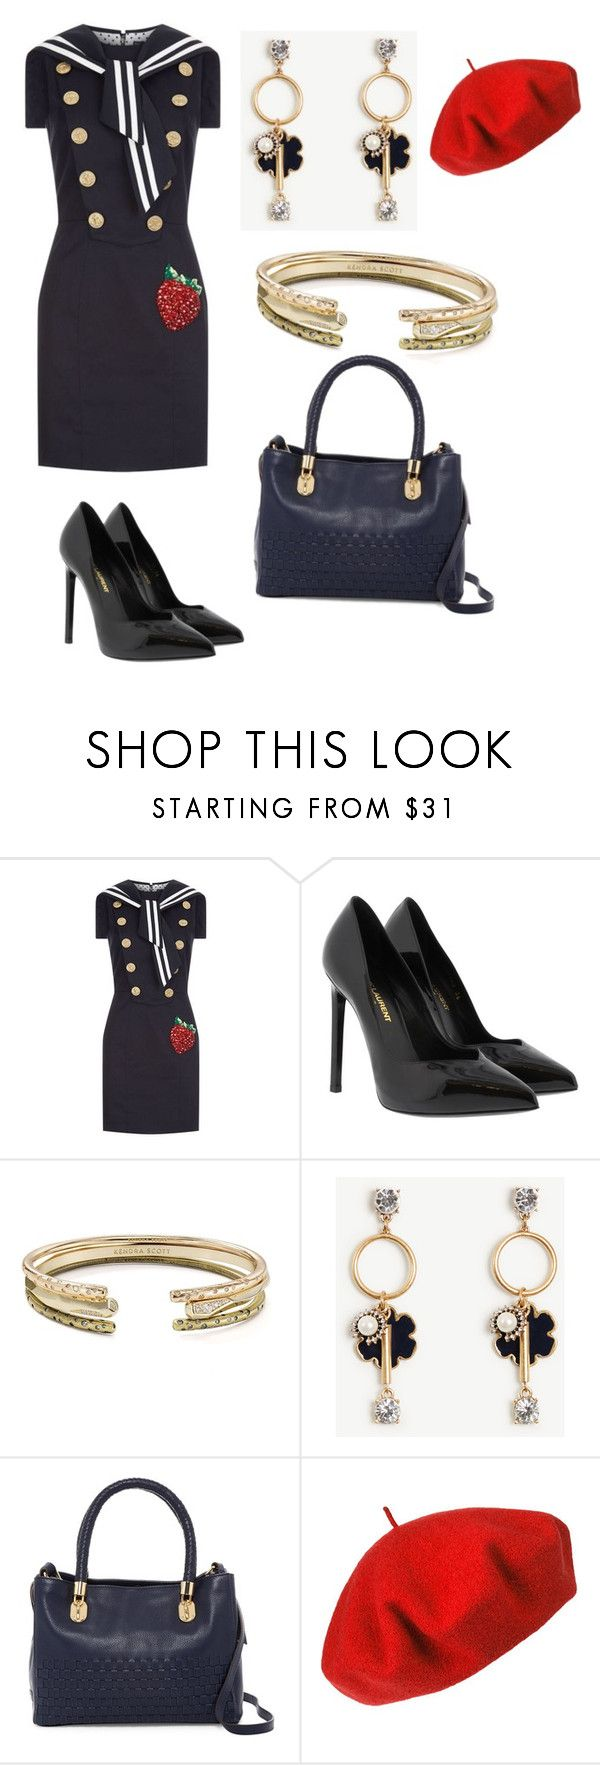 """Untitled #531"" by jenn-m31 ❤ liked on Polyvore featuring Dolce&Gabbana, Yves Saint Laurent, Kendra Scott, Ann Taylor, Cole Haan and Betmar"